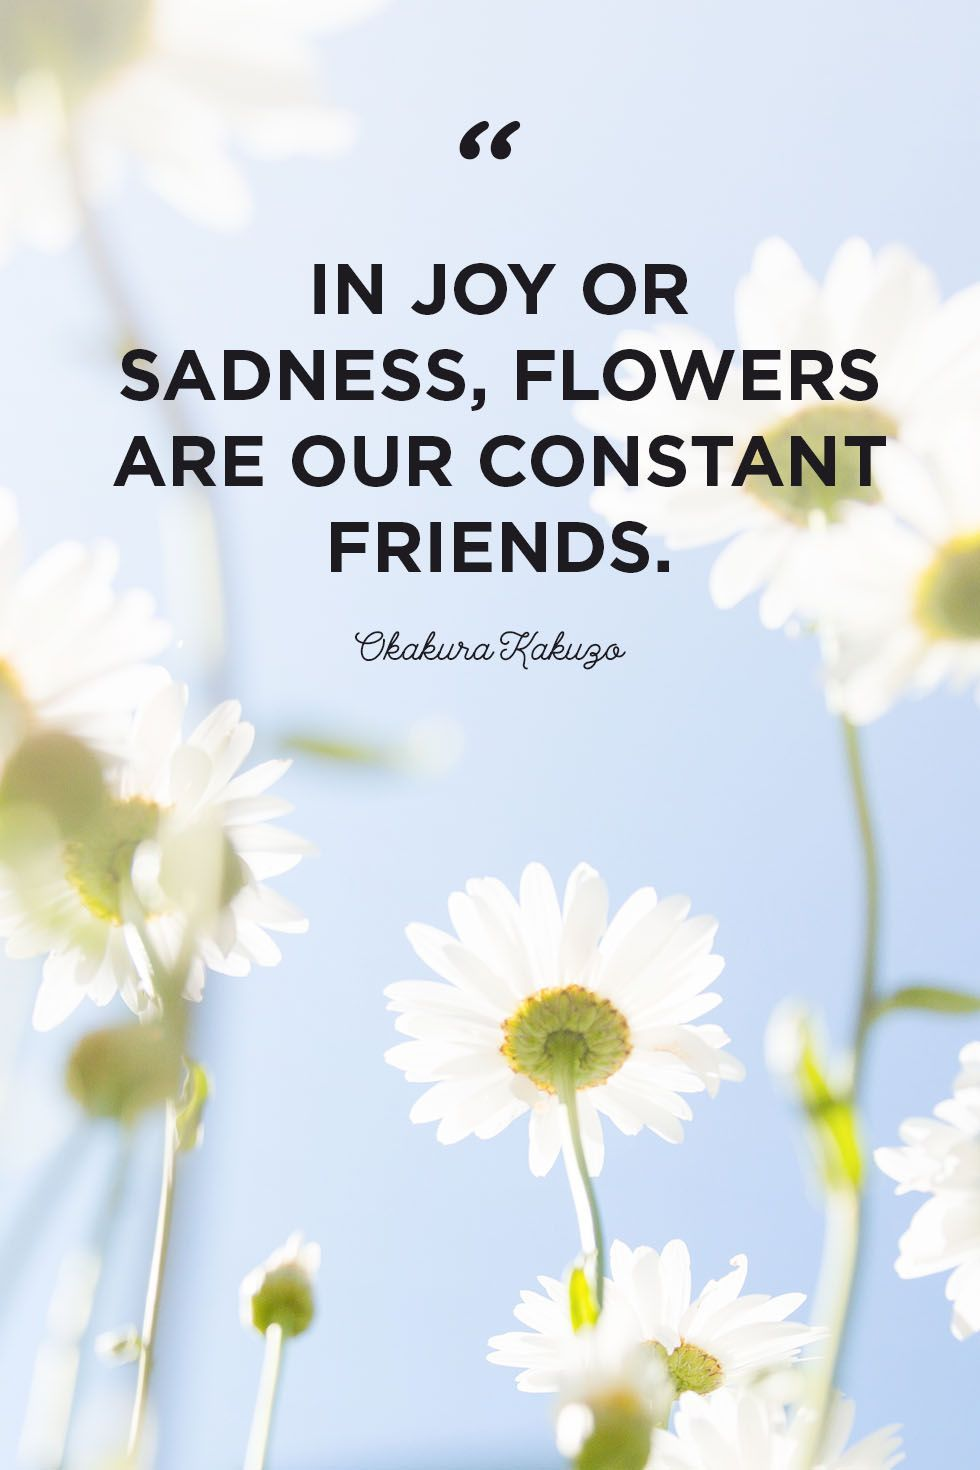 Flower Quotes To Inspire Growth In 2020 Flower Quotes Inspirational Flower Quotes Inspirational Quotes